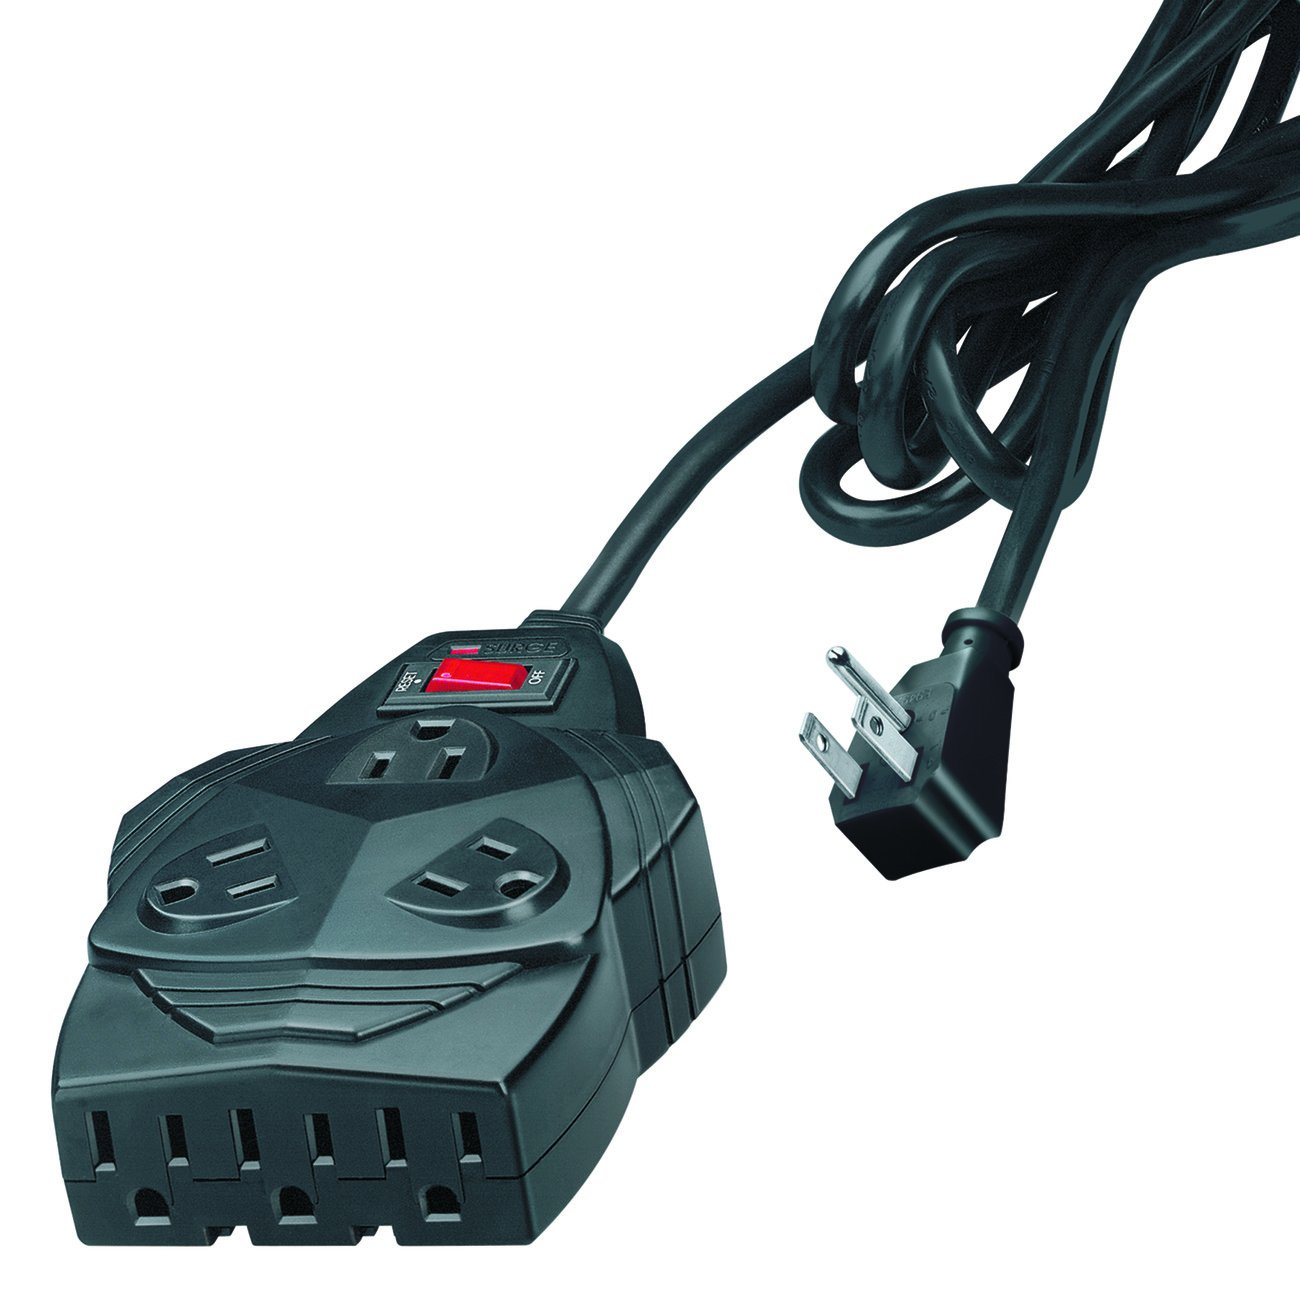 Fellowes Mighty 8 Surge Protector with 8-Outlets, 6 Foot Cord, 1300 Joules 99090